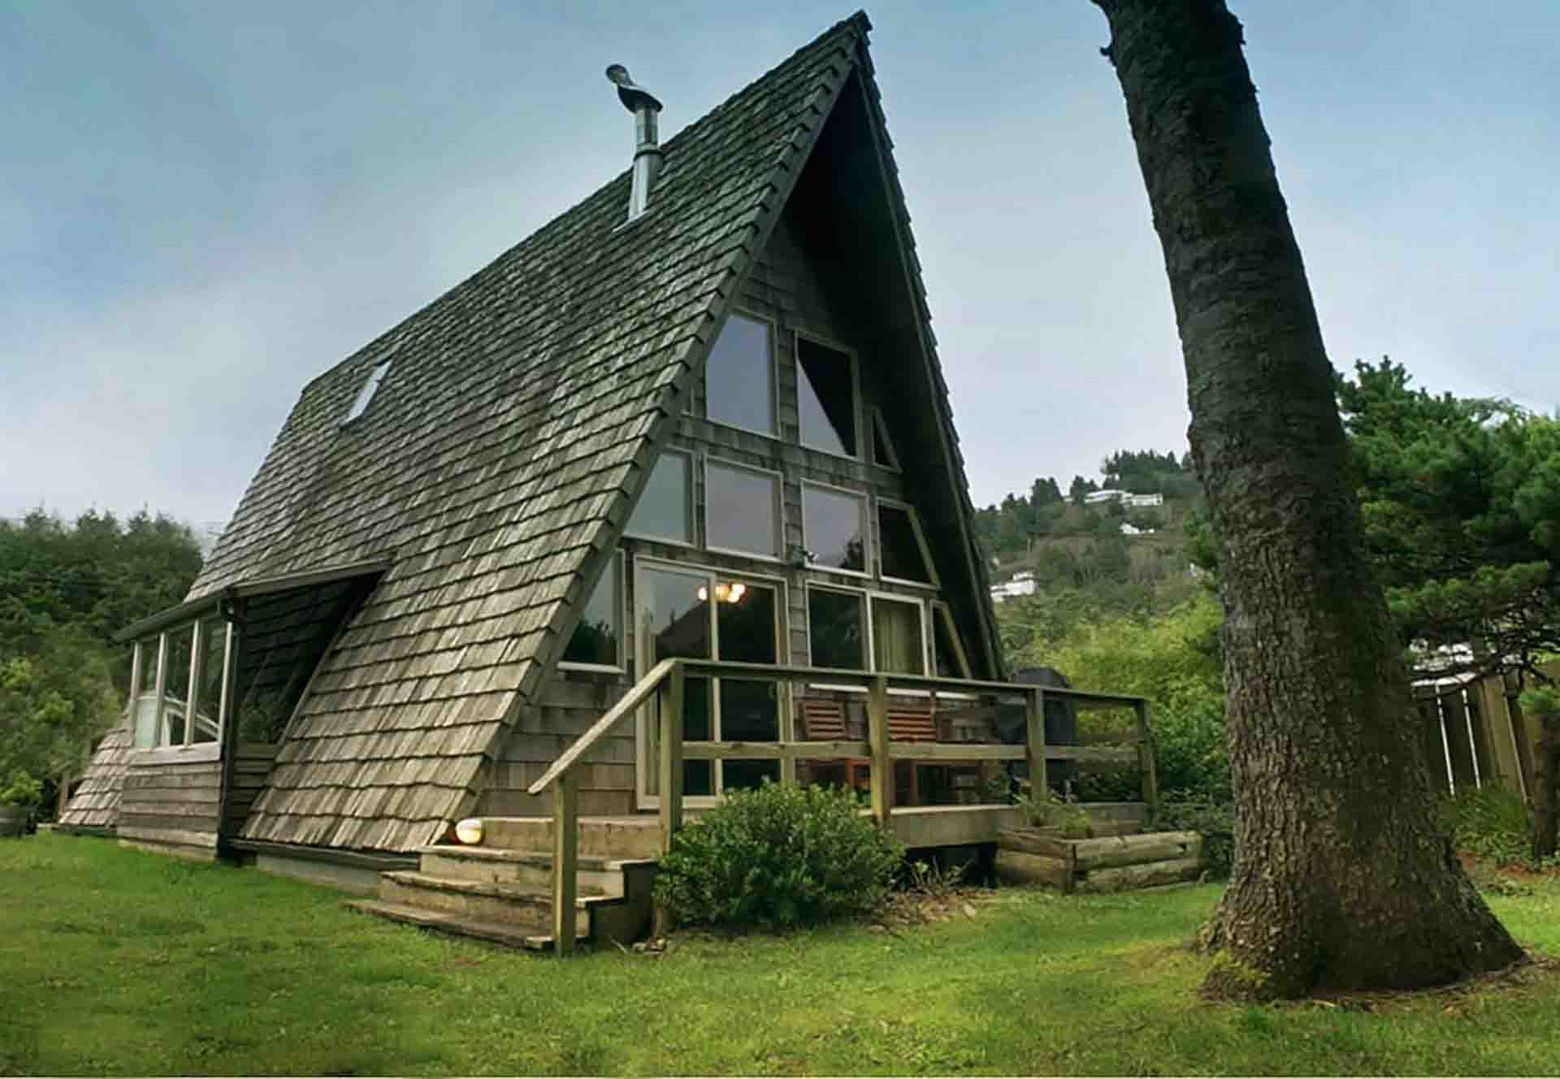 The coolest house in Yachats, oh yes!